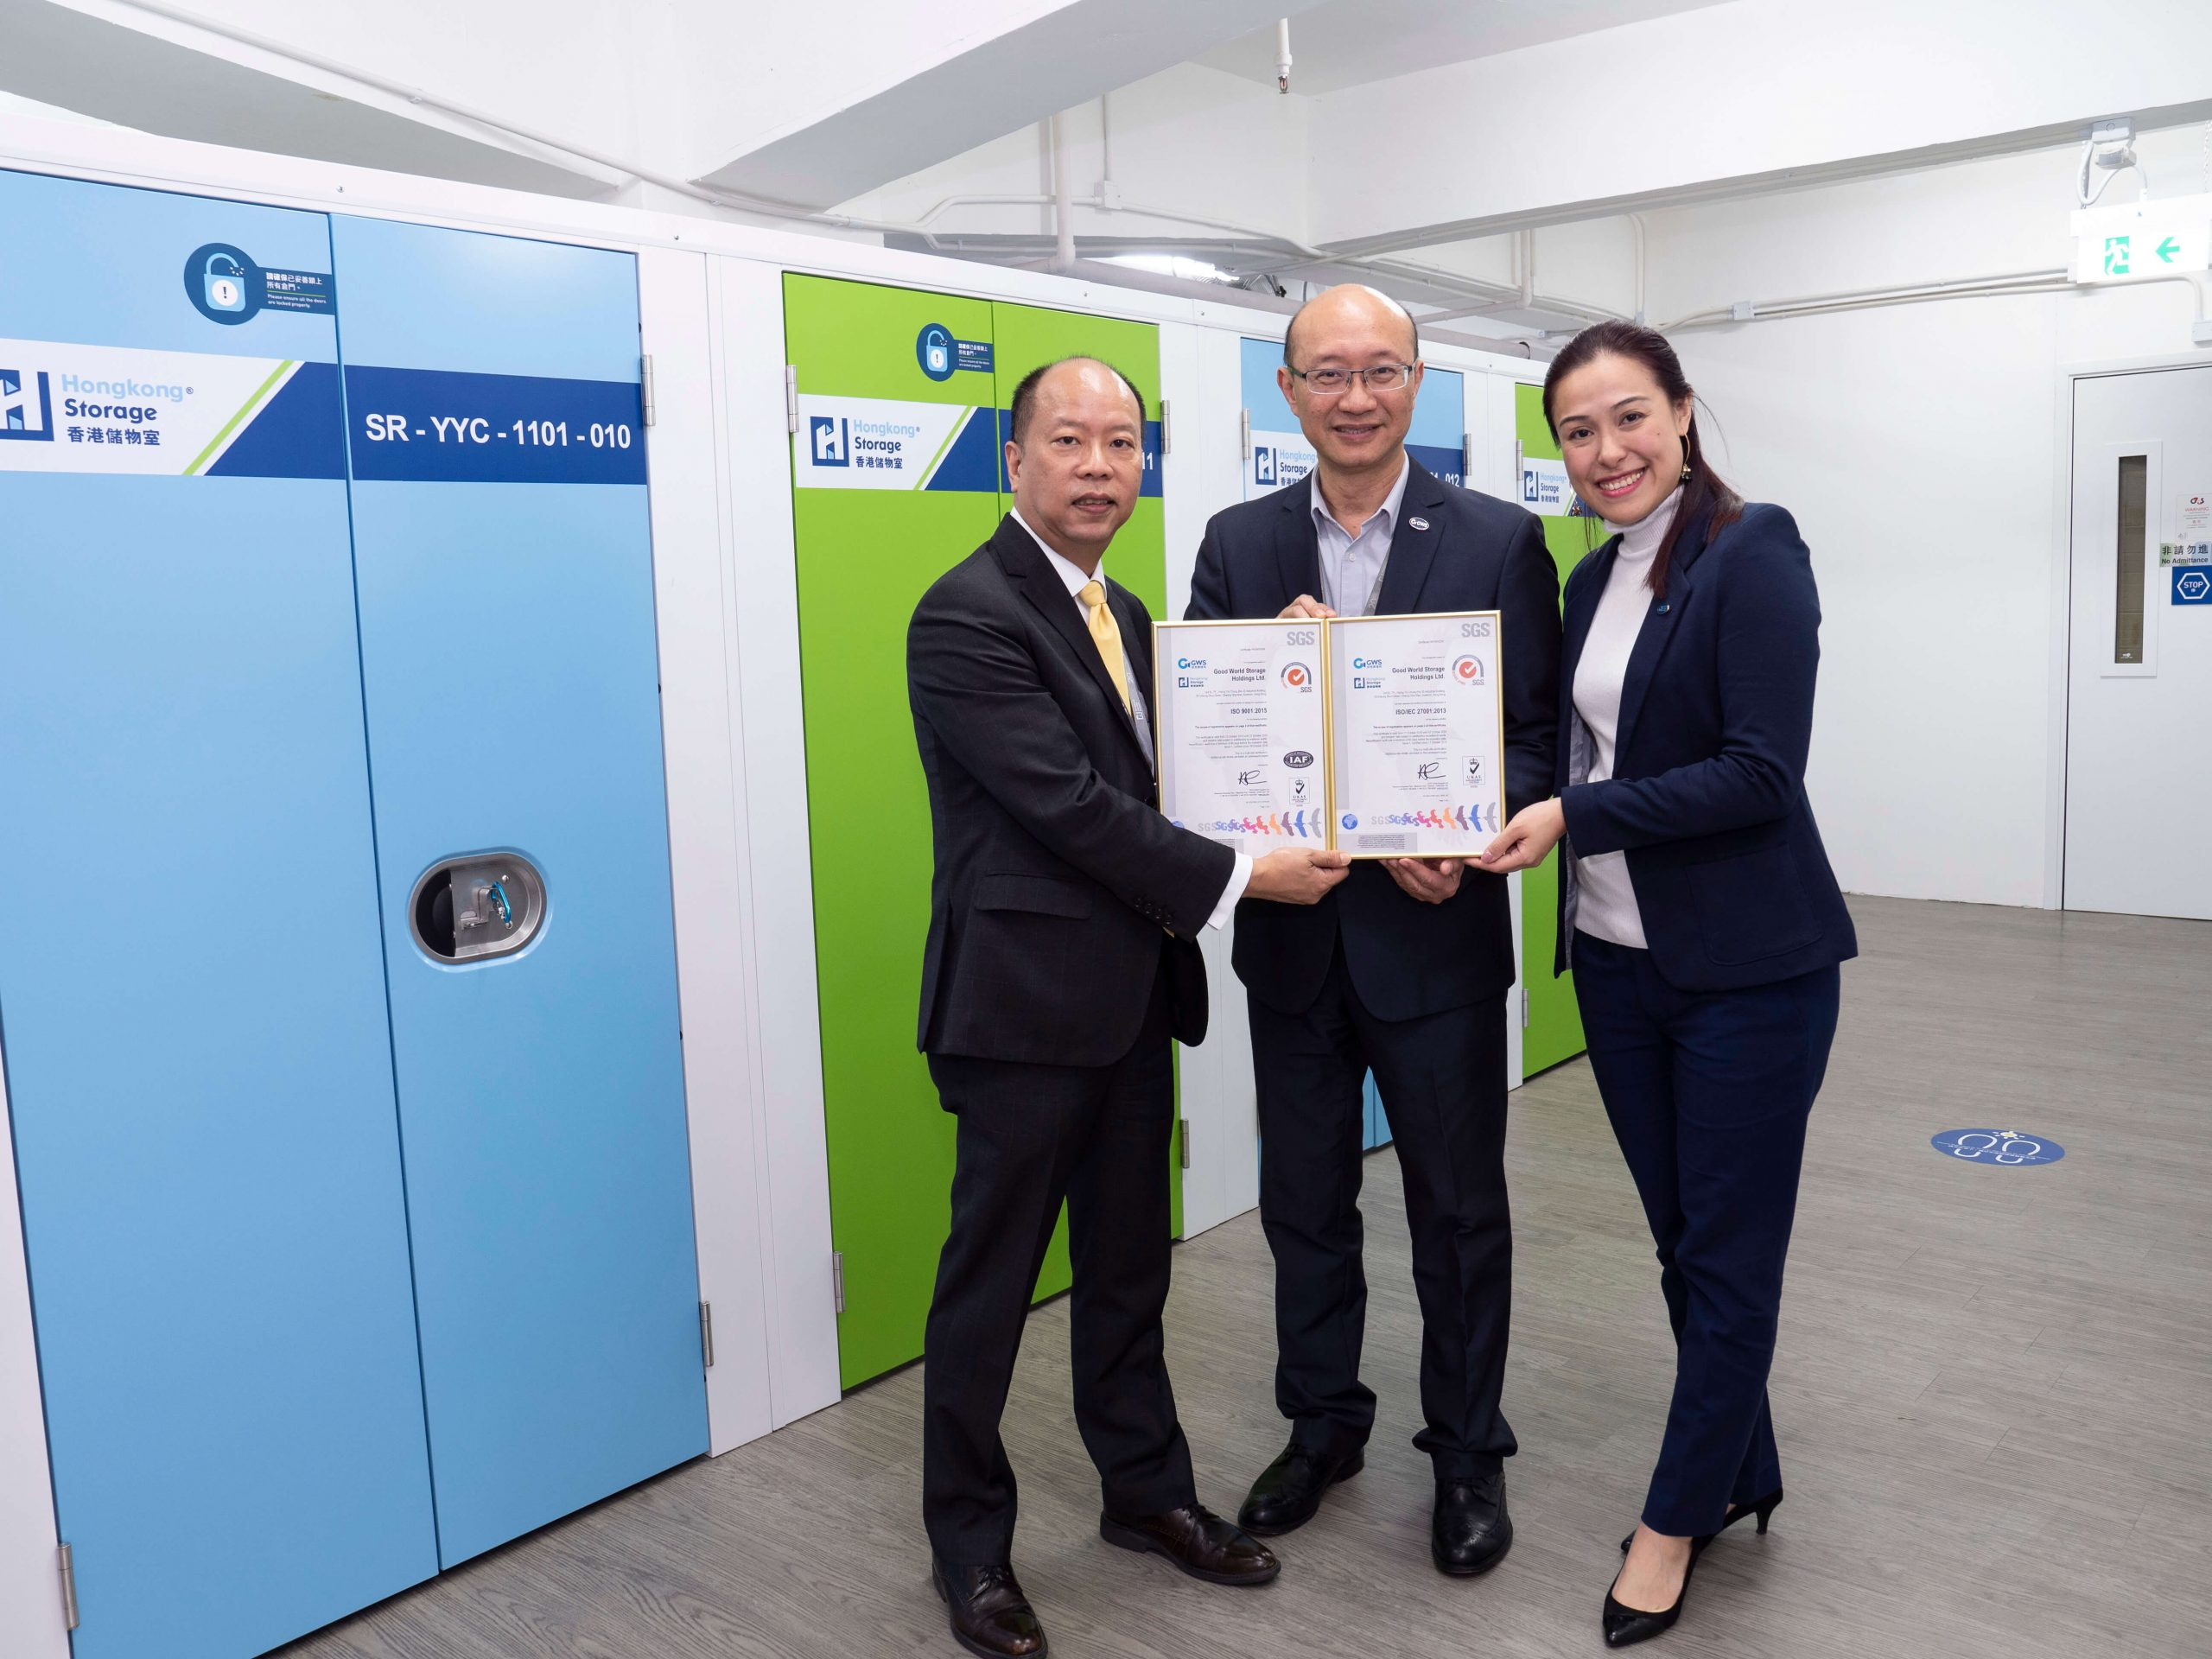 Hongkong Storage receives the dual certification of ISO 9001 & ISO/IEC 27001 – the world's first self storage operator achieved both accreditations at the same time